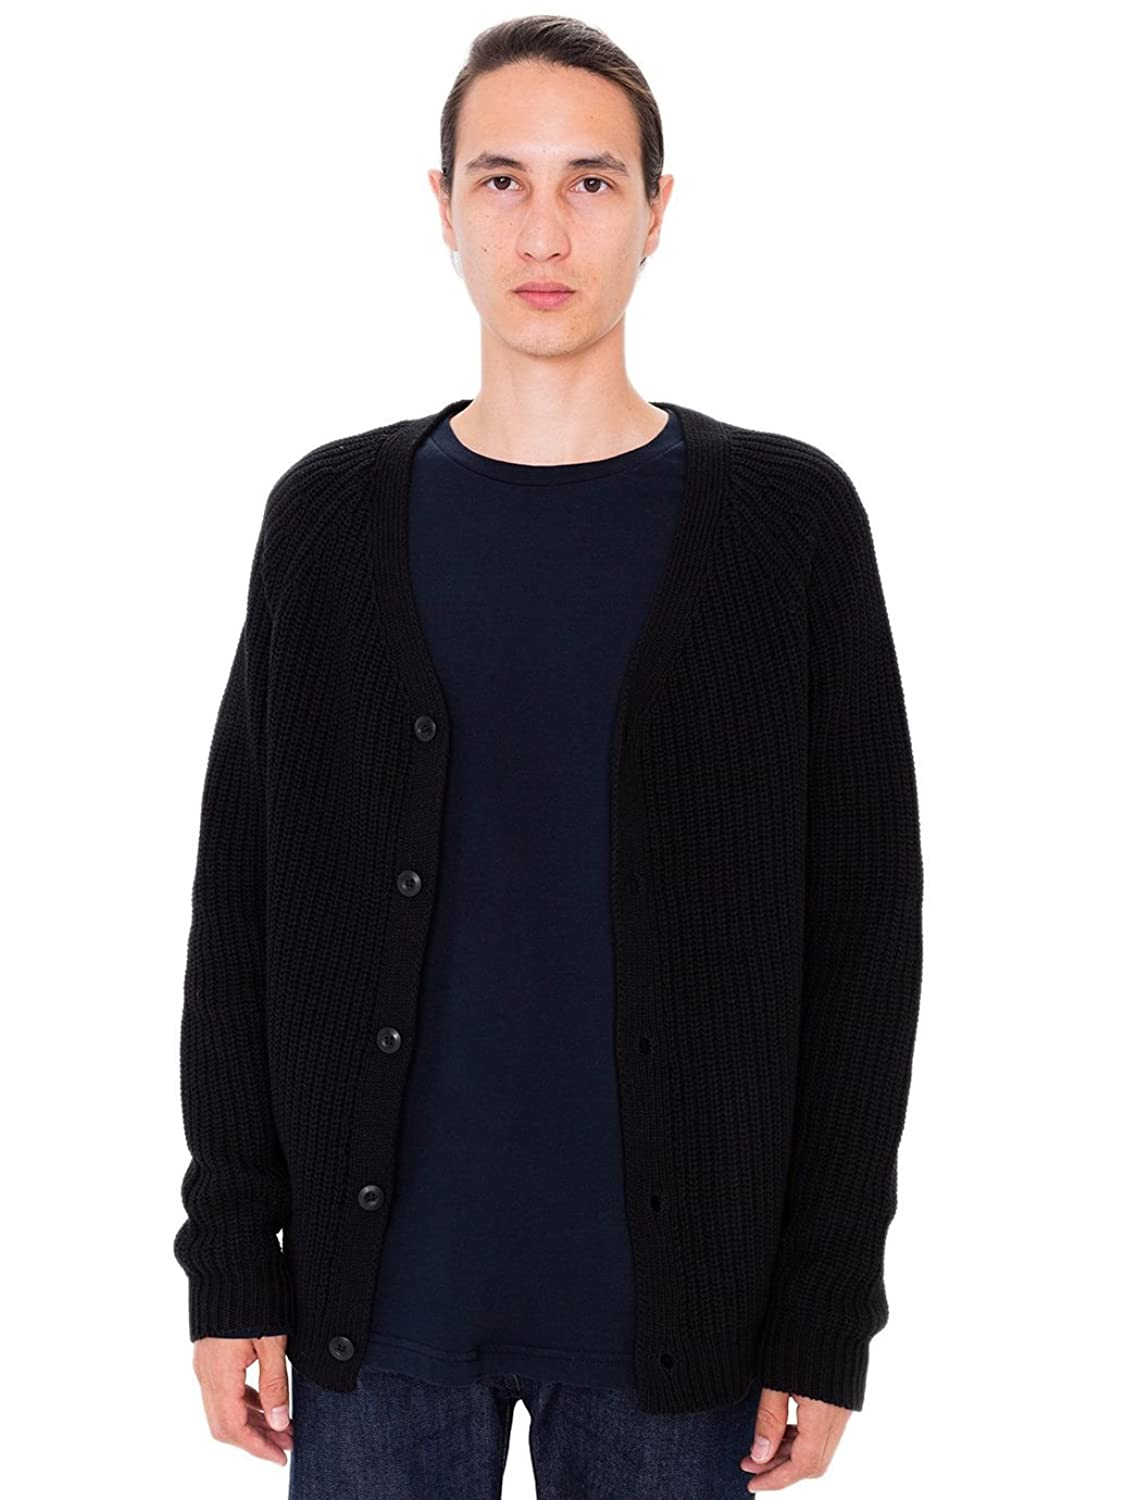 American Apparel Recycled Cotton Fisherman Cardigan